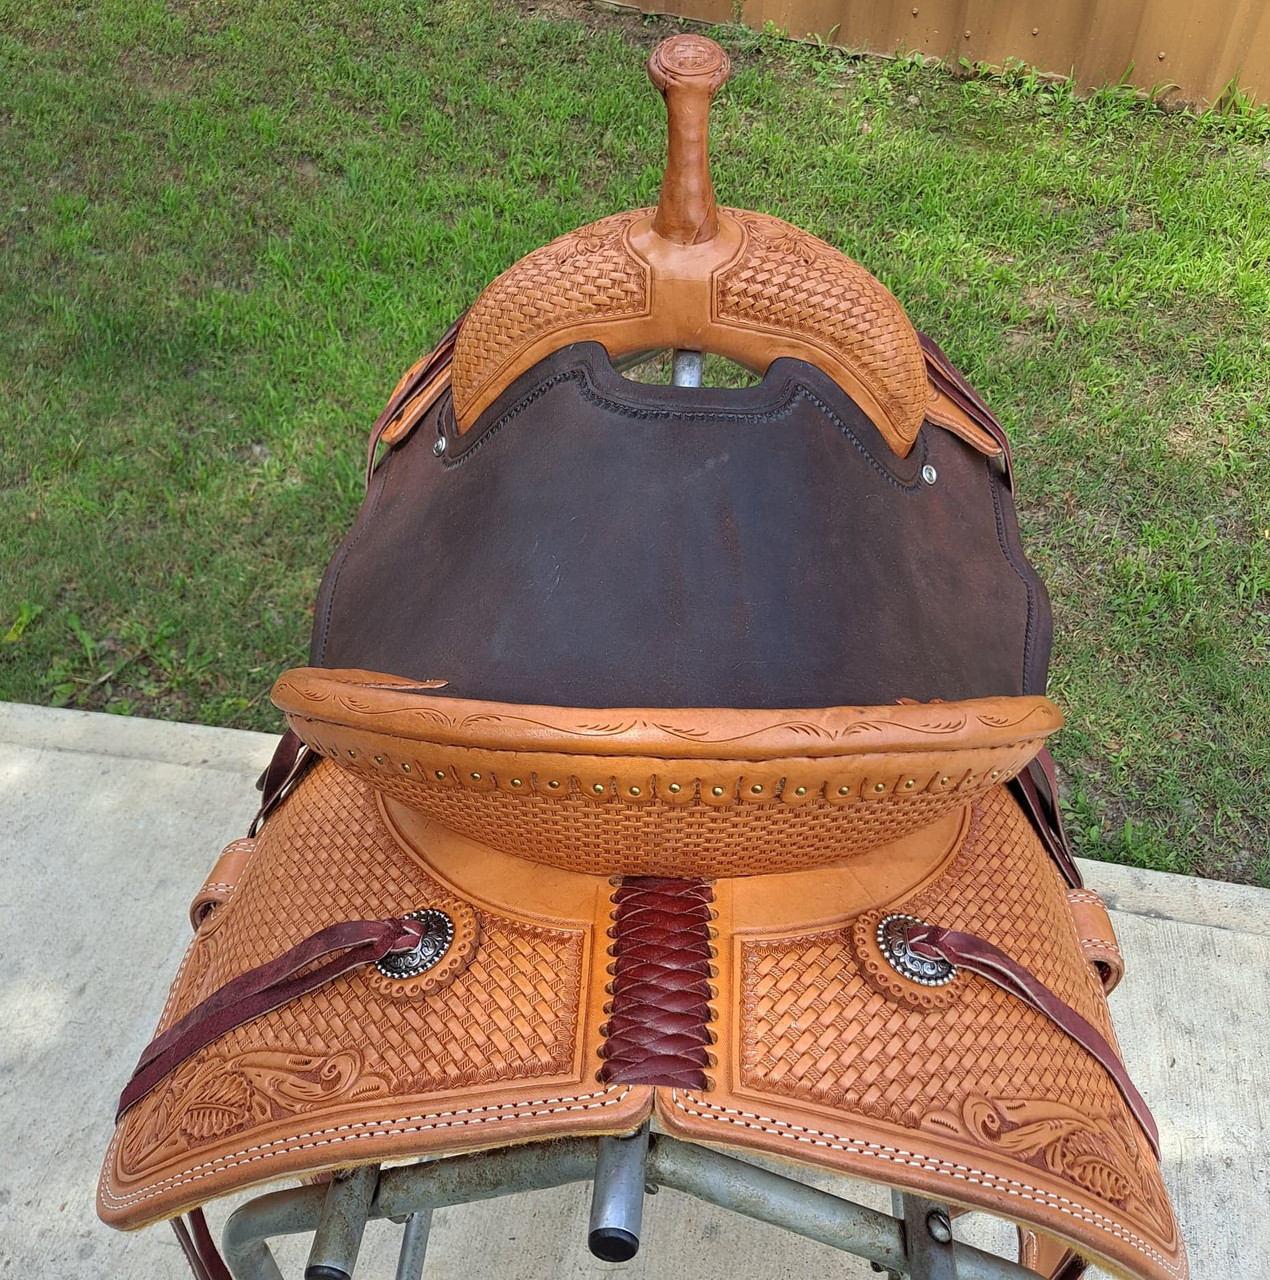 New Jackson Stock Saddle by Fort Worth Saddle Co with 15 inch seat. Light oil Hermann Oak leather with contrasting dark seat, jockeys and fenders. Roughout contact points and pencil roll seat for secure ride. Gullet size is 8.25 inch, weight is 29lbs, and skirt is 27 inch. Made in USA. Limited lifetime warranty.  S1305